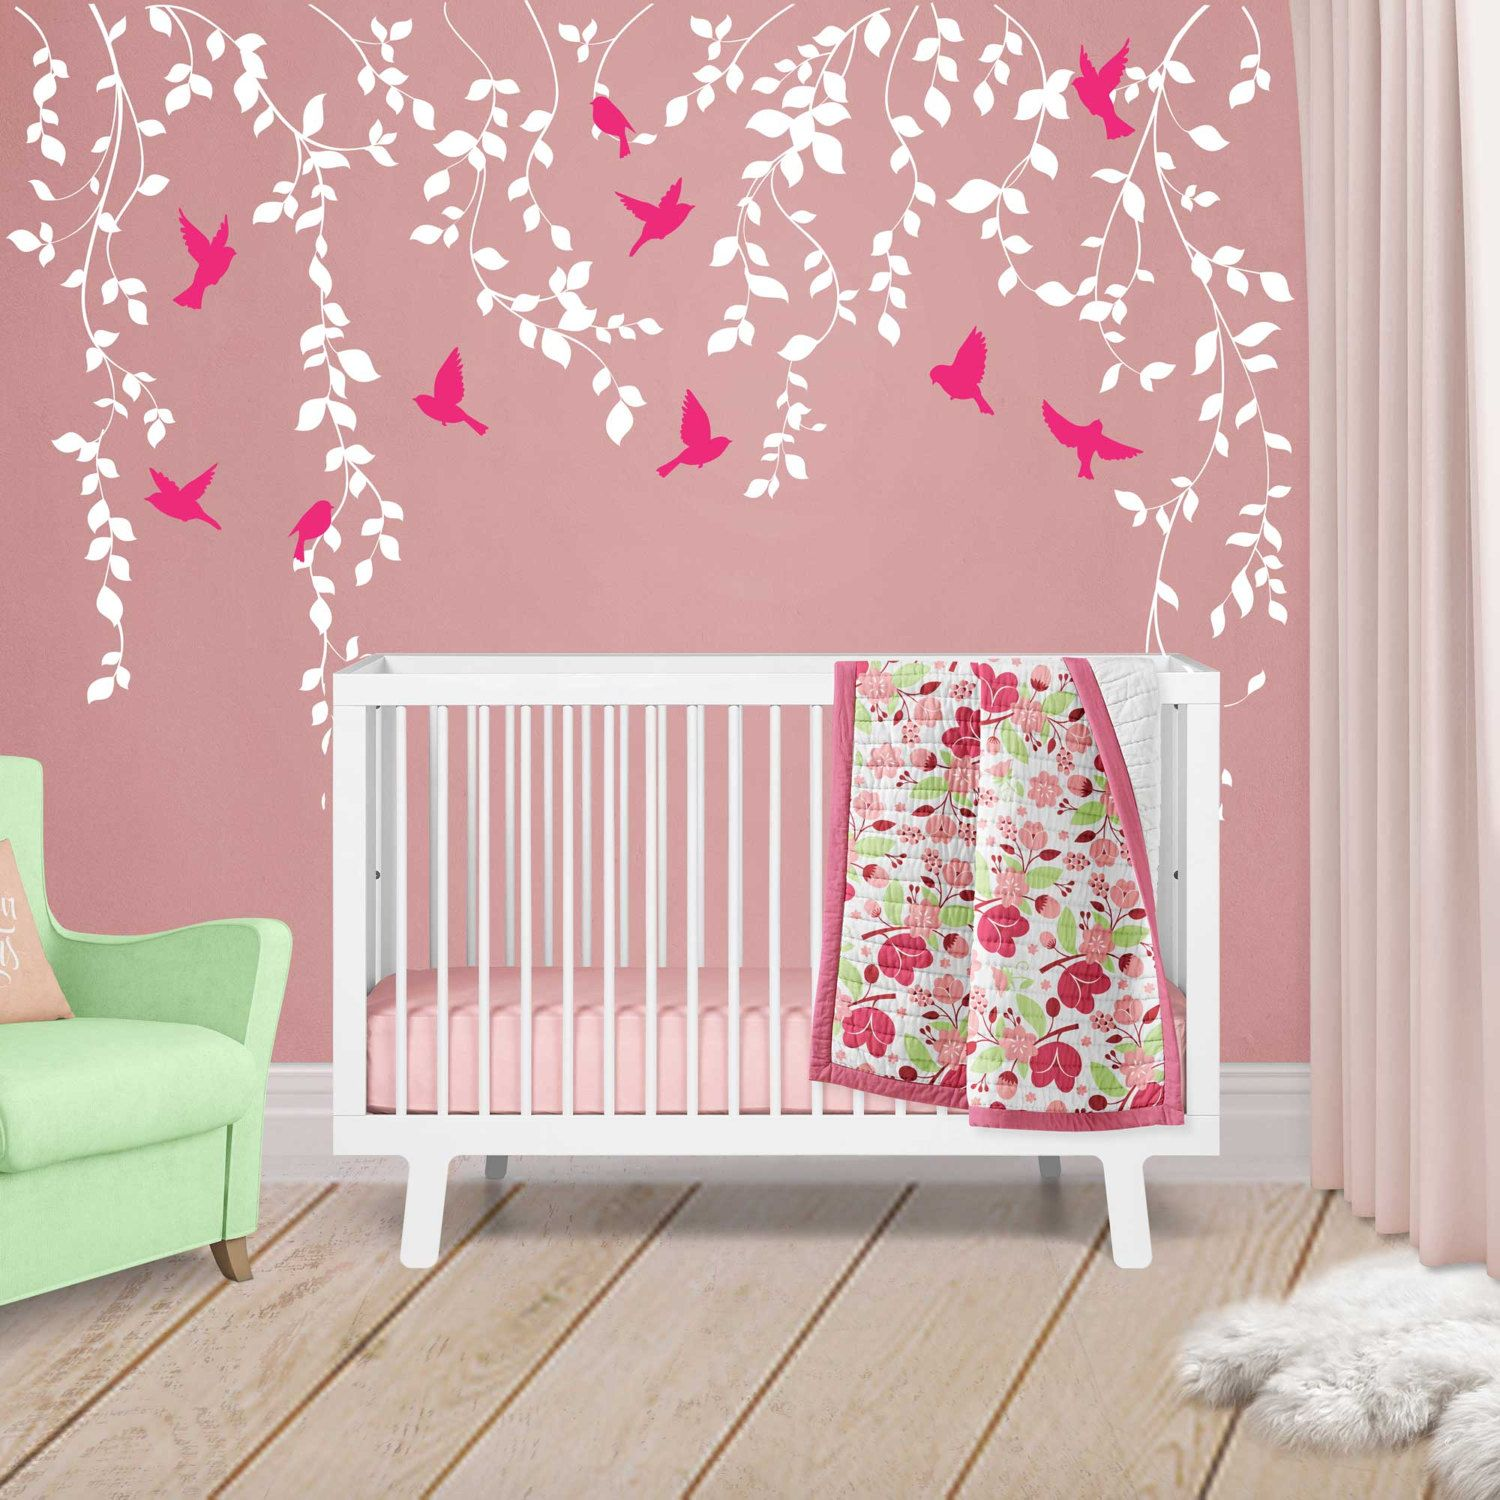 Vine Wall Decal For Baby Girl Nursery Décor   Wall Vines Nursery Decals  Large Tree Wall Decal   Baby Wall Decal Tree With Birds   WB402 By  Wordybirdstudios ...